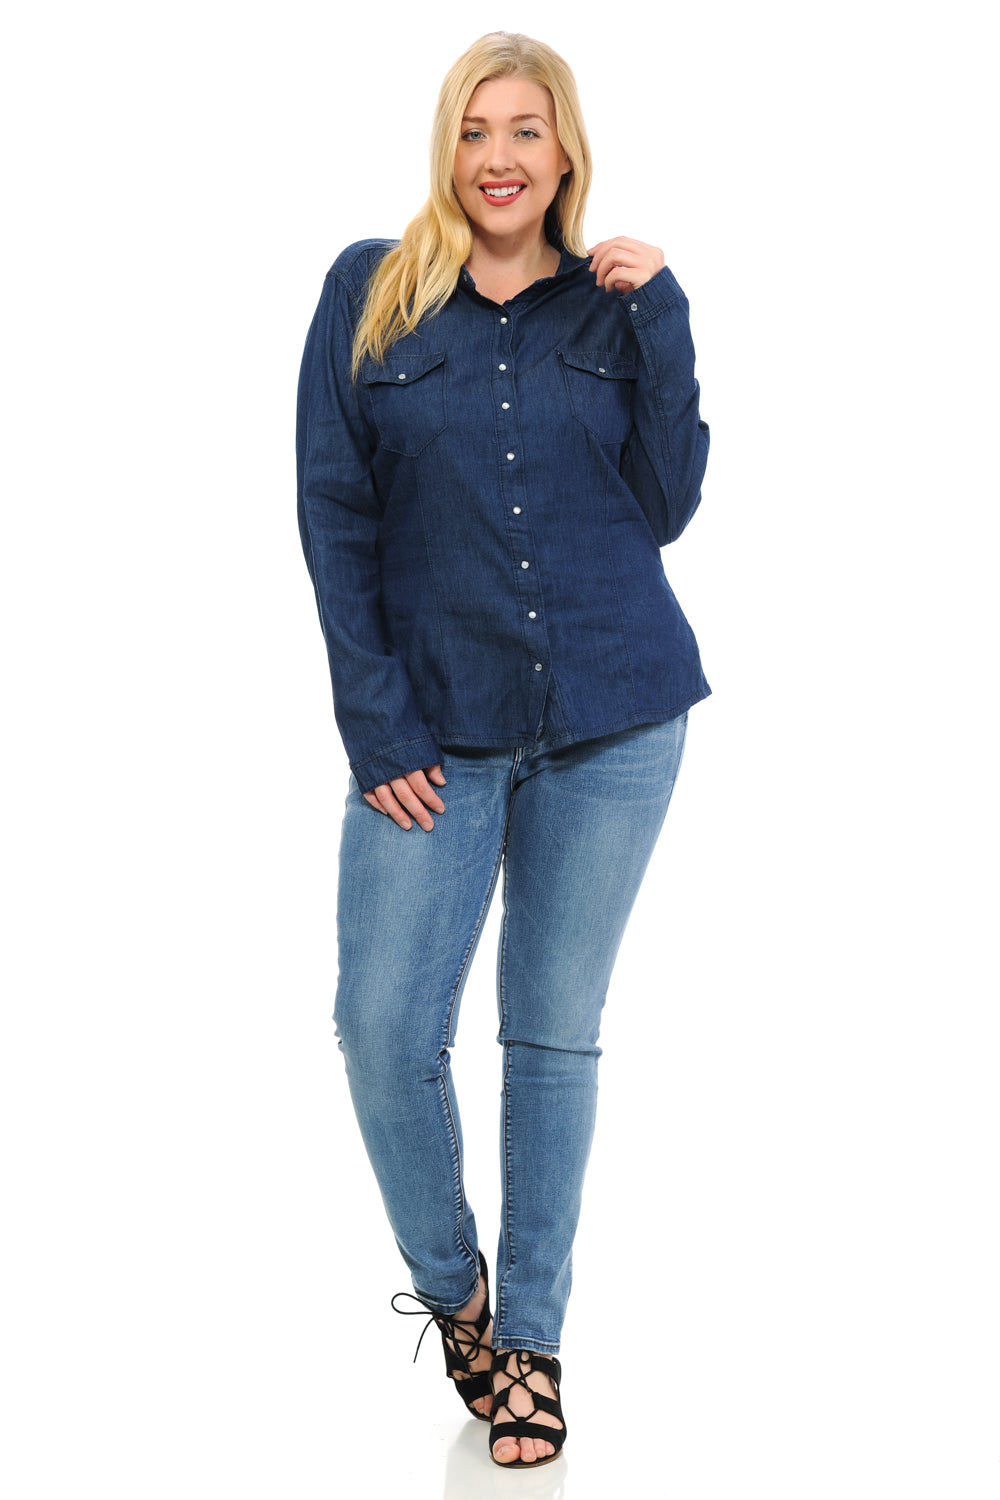 Sweet Look Women's Denim Blouse - Plus Size - Style K801B - Ann Et Craig